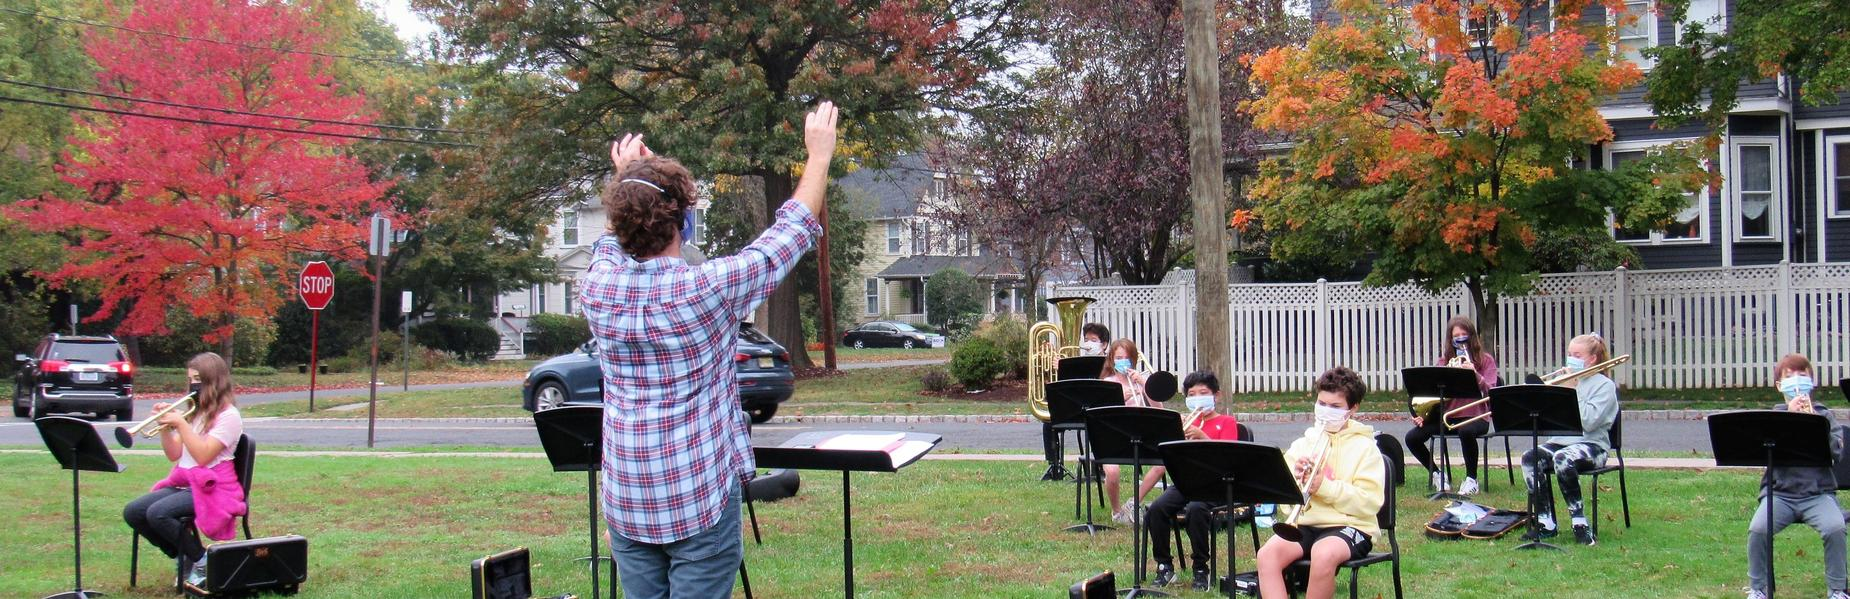 With brilliant autumn colors as a backdrop, Roosevelt Intermediate School Band Director James Doyle conducts/instructs student musicians.